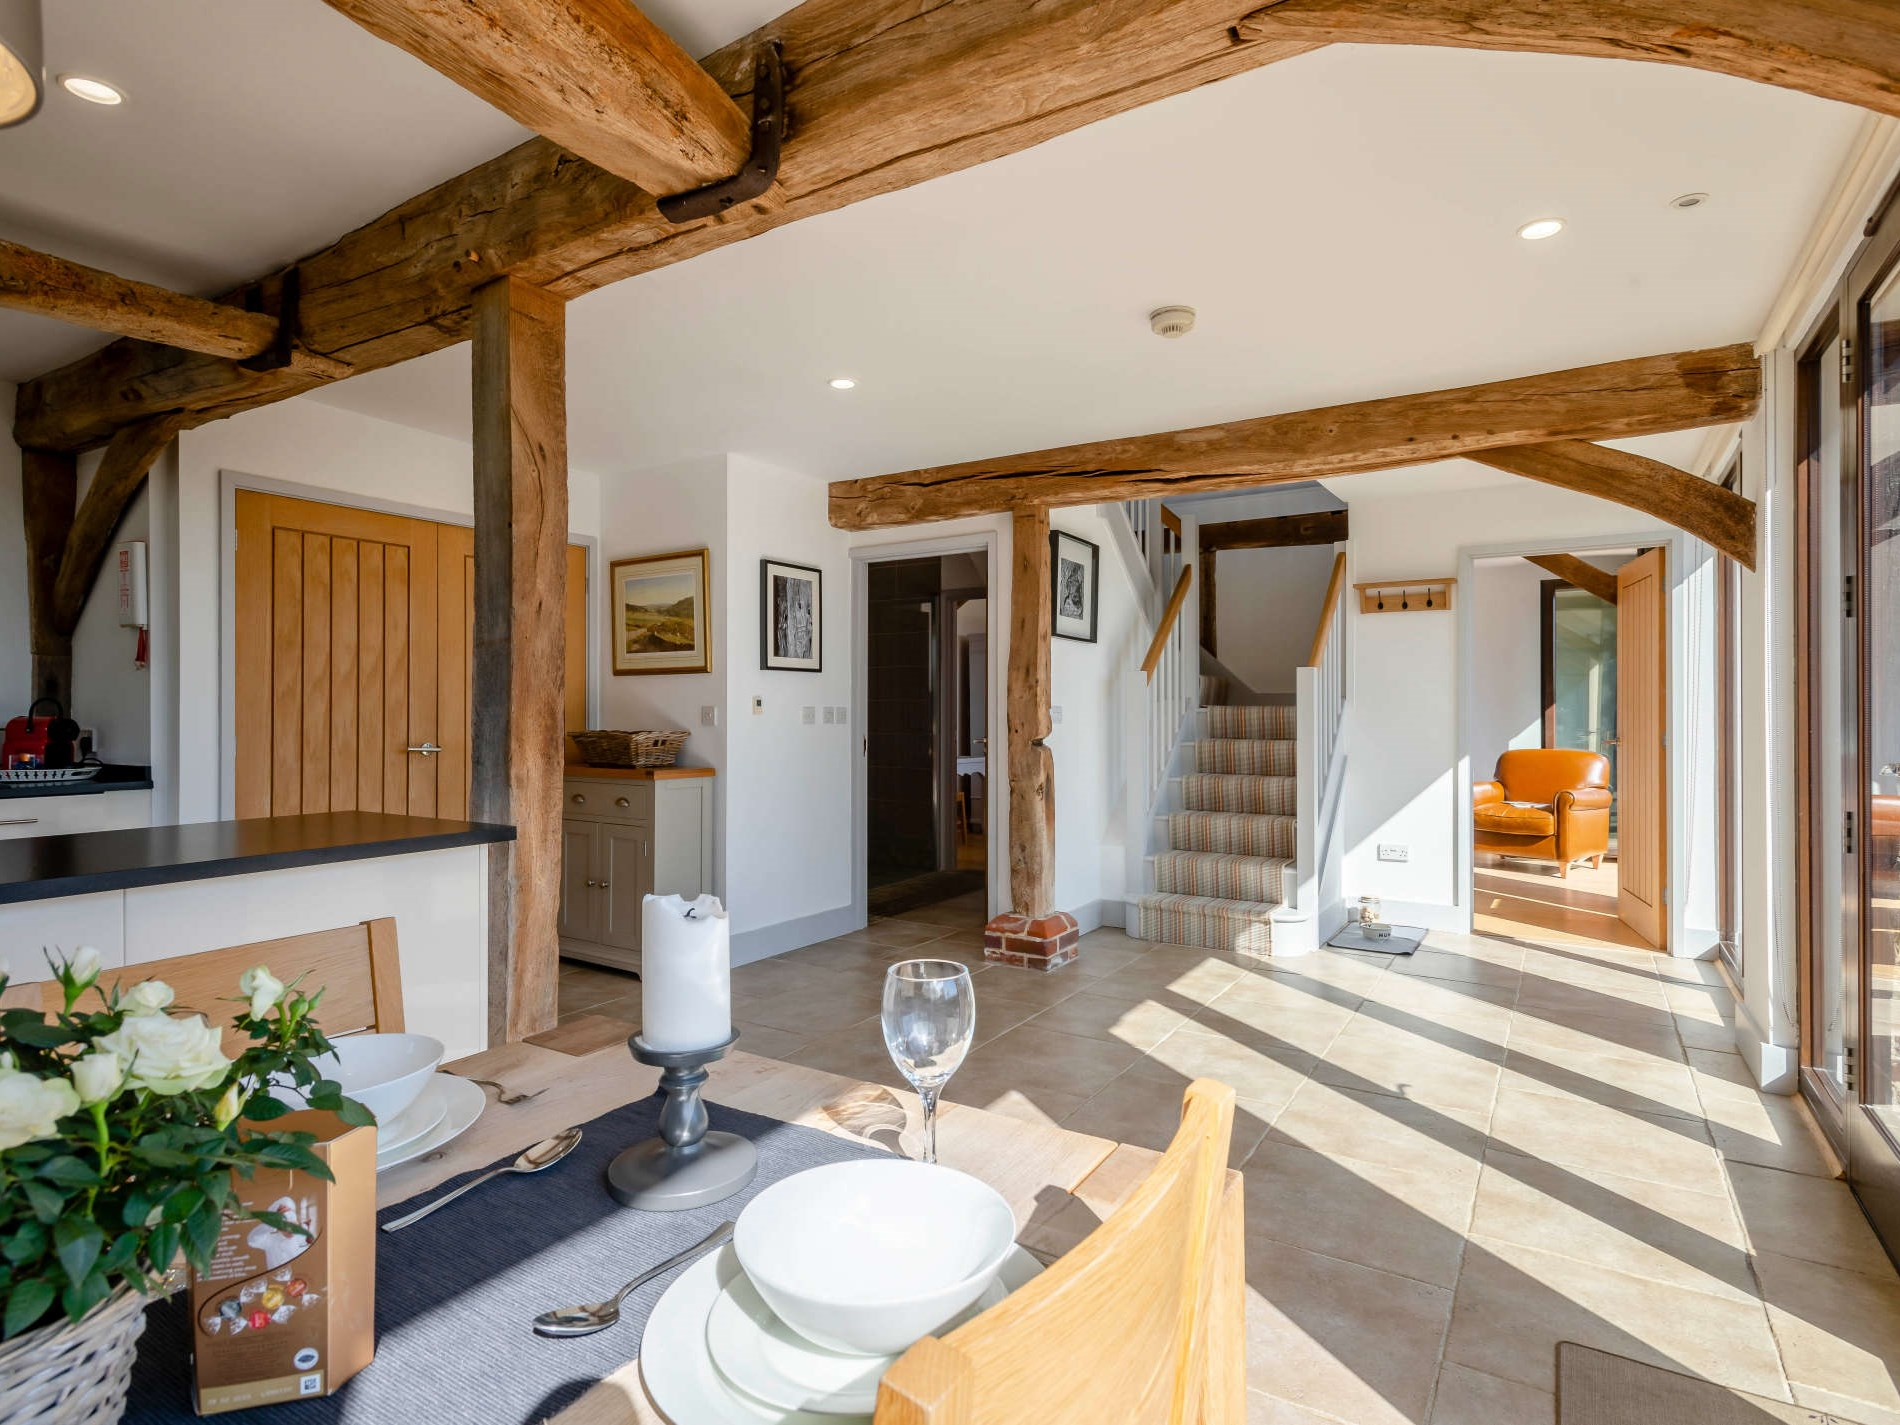 2 Bedroom Cottage in Diss, East Anglia